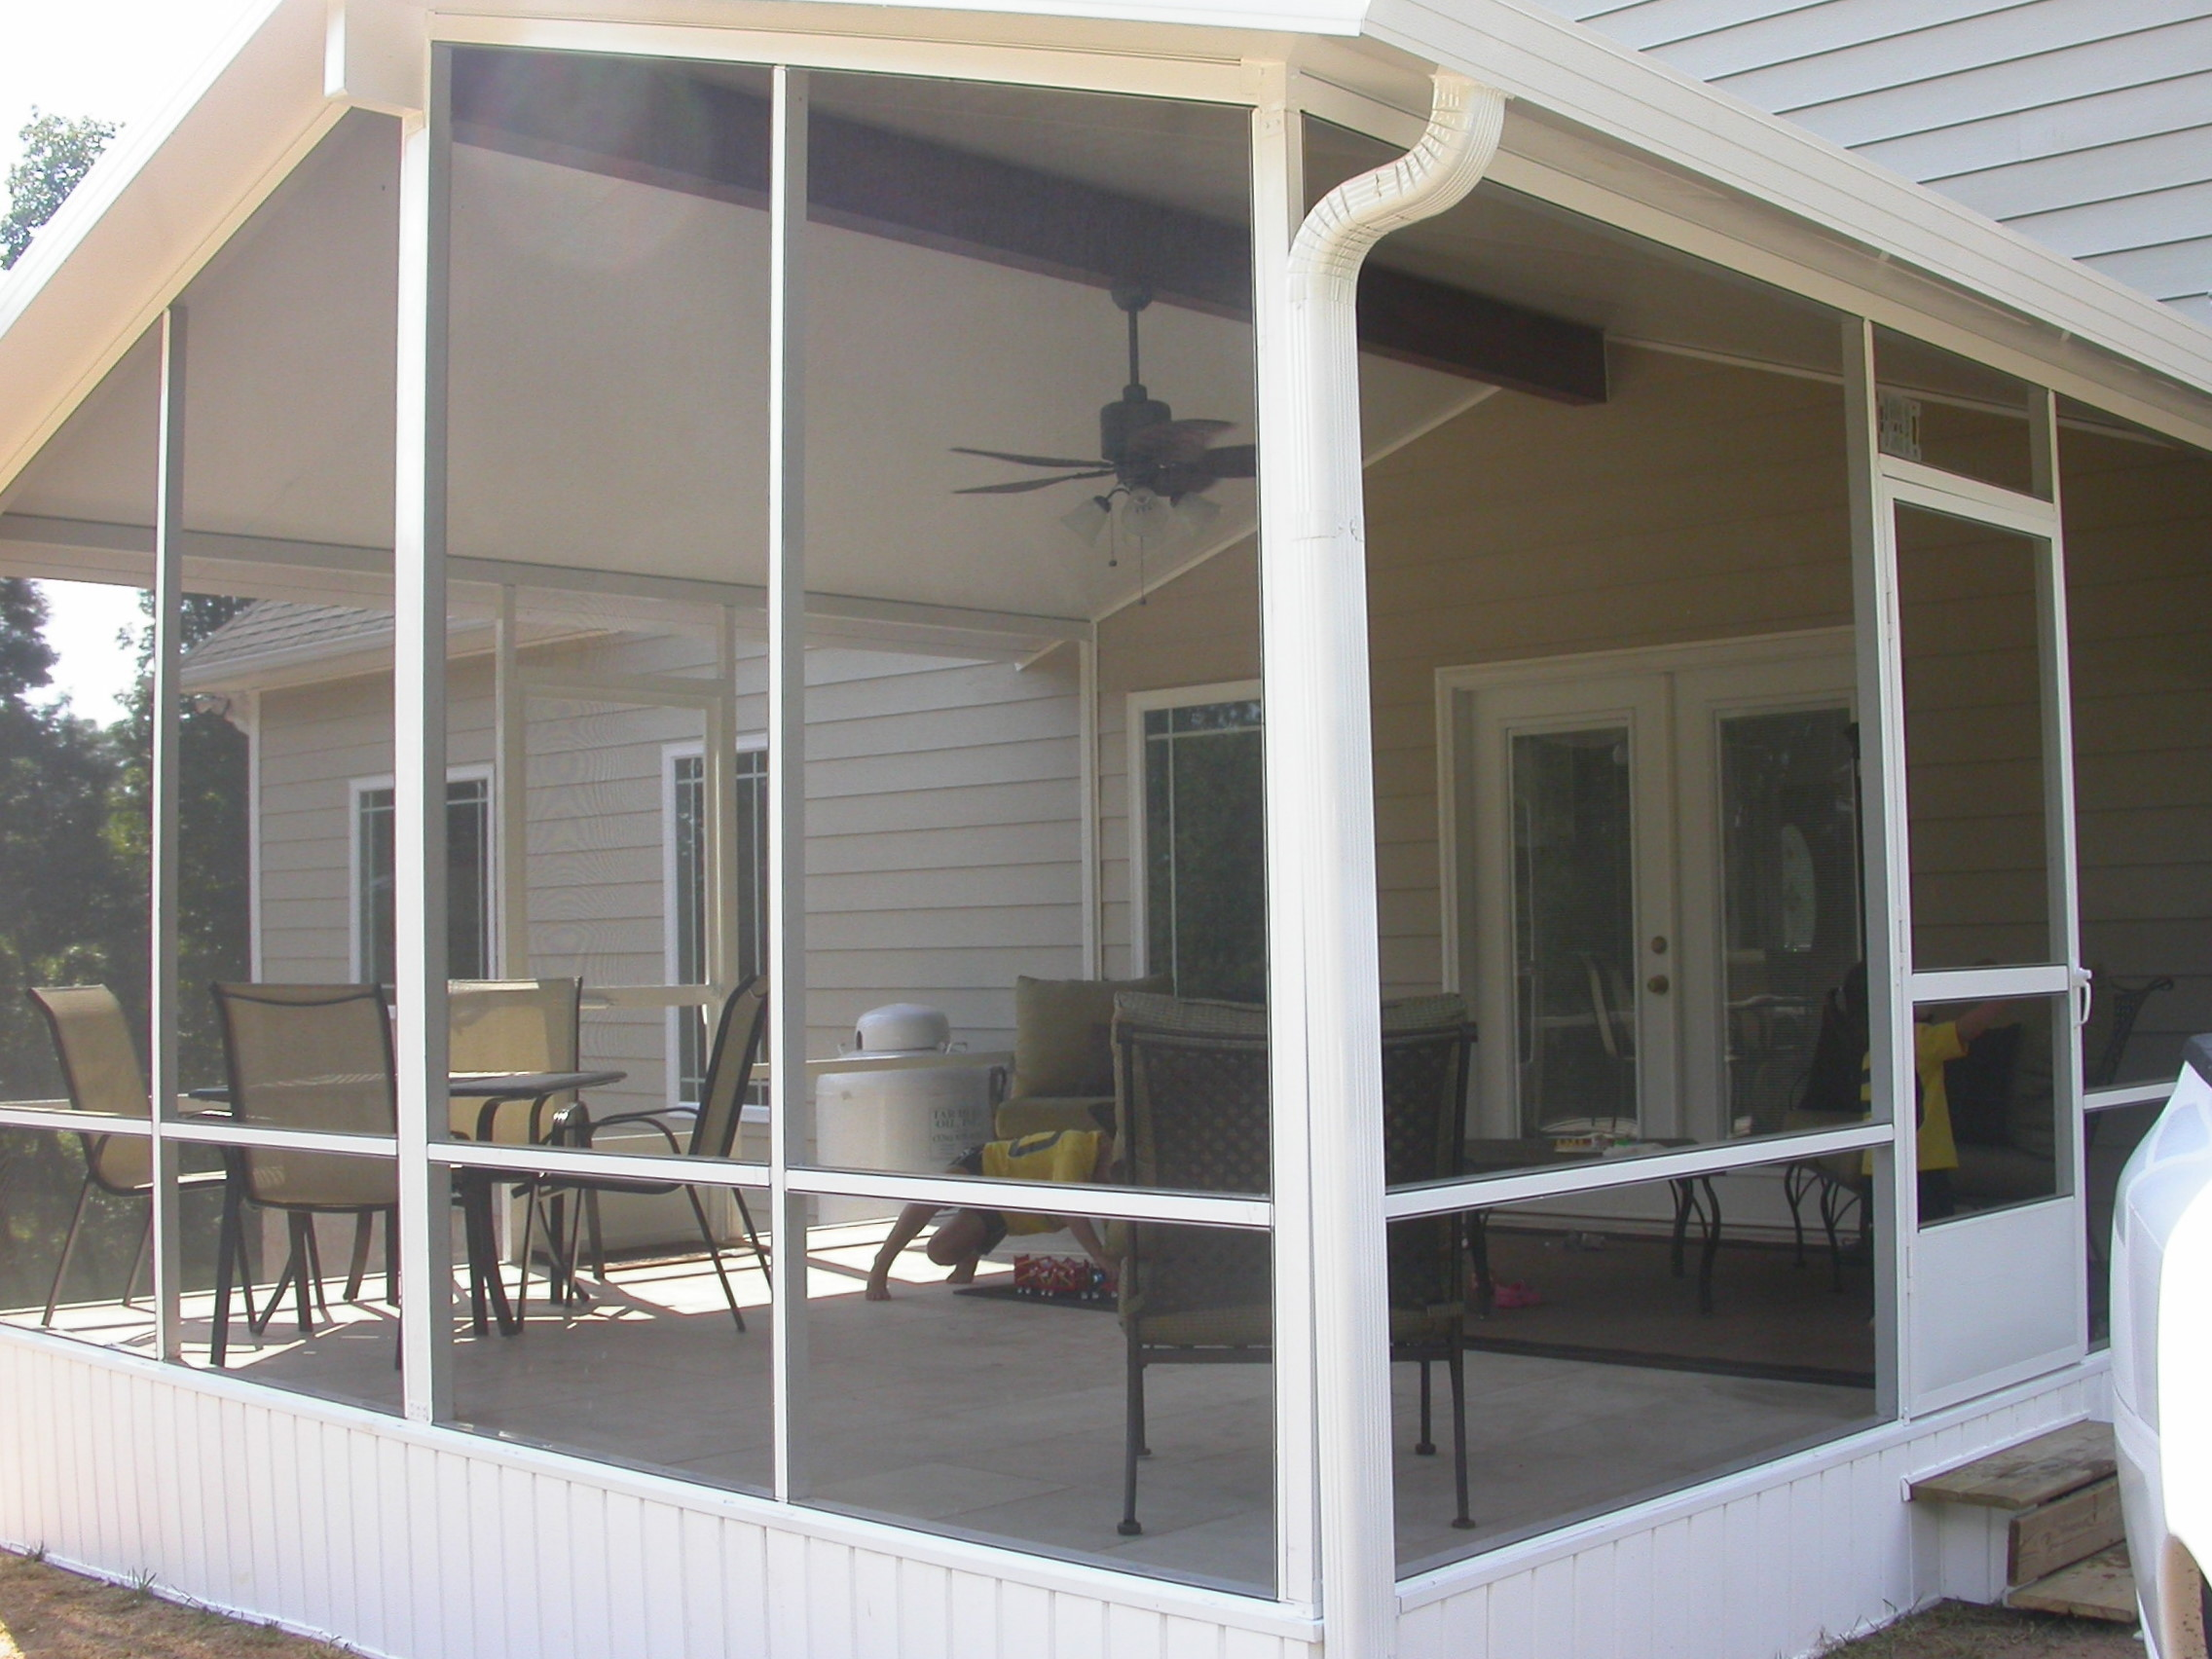 High Quality Vinly Sunrooms   Screen Rooms   ABC Windows And More   Ohio